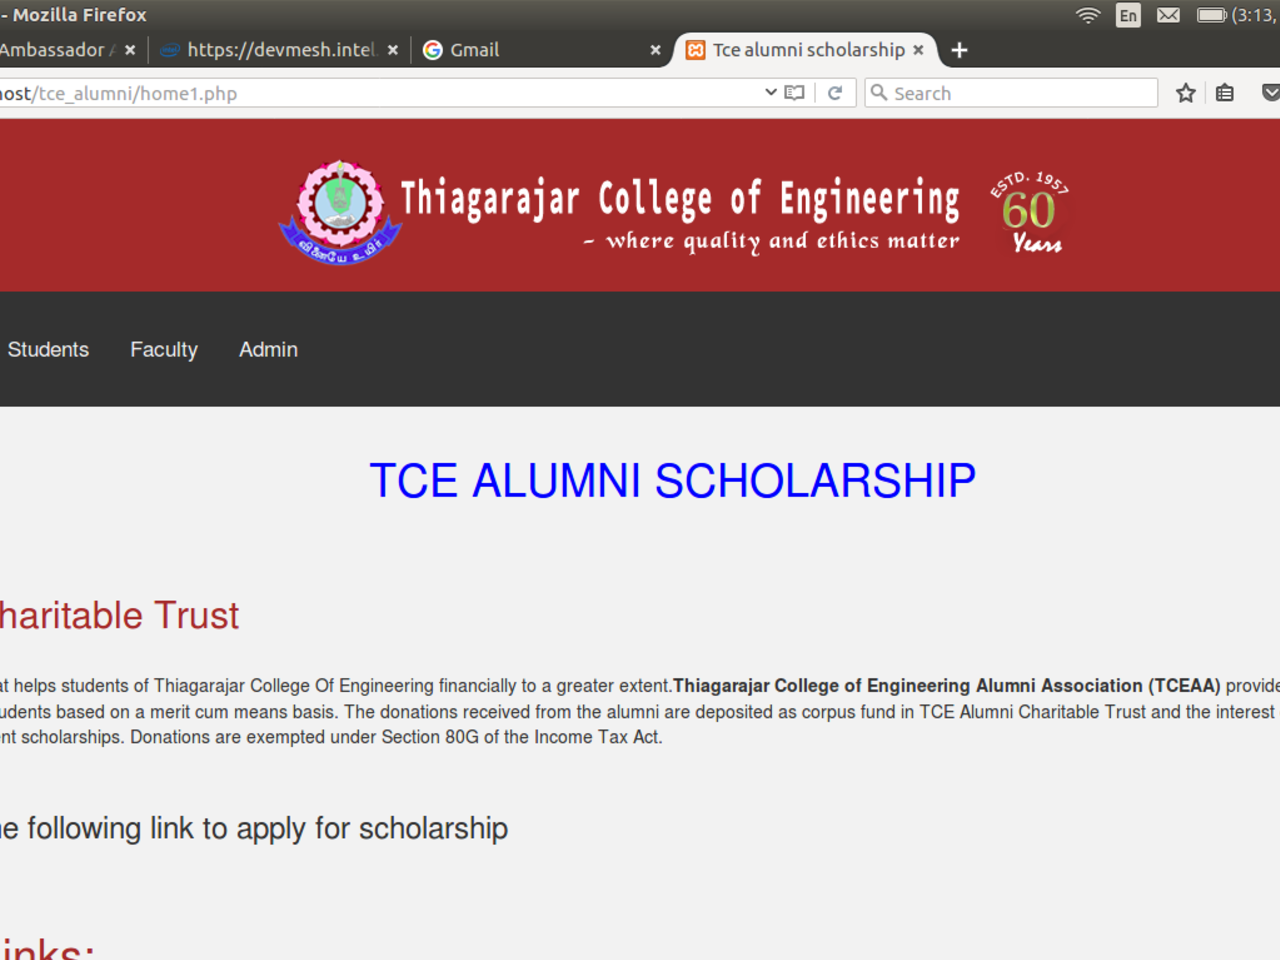 TCE ALUMNI SCHOLARSHIP WEBSITE